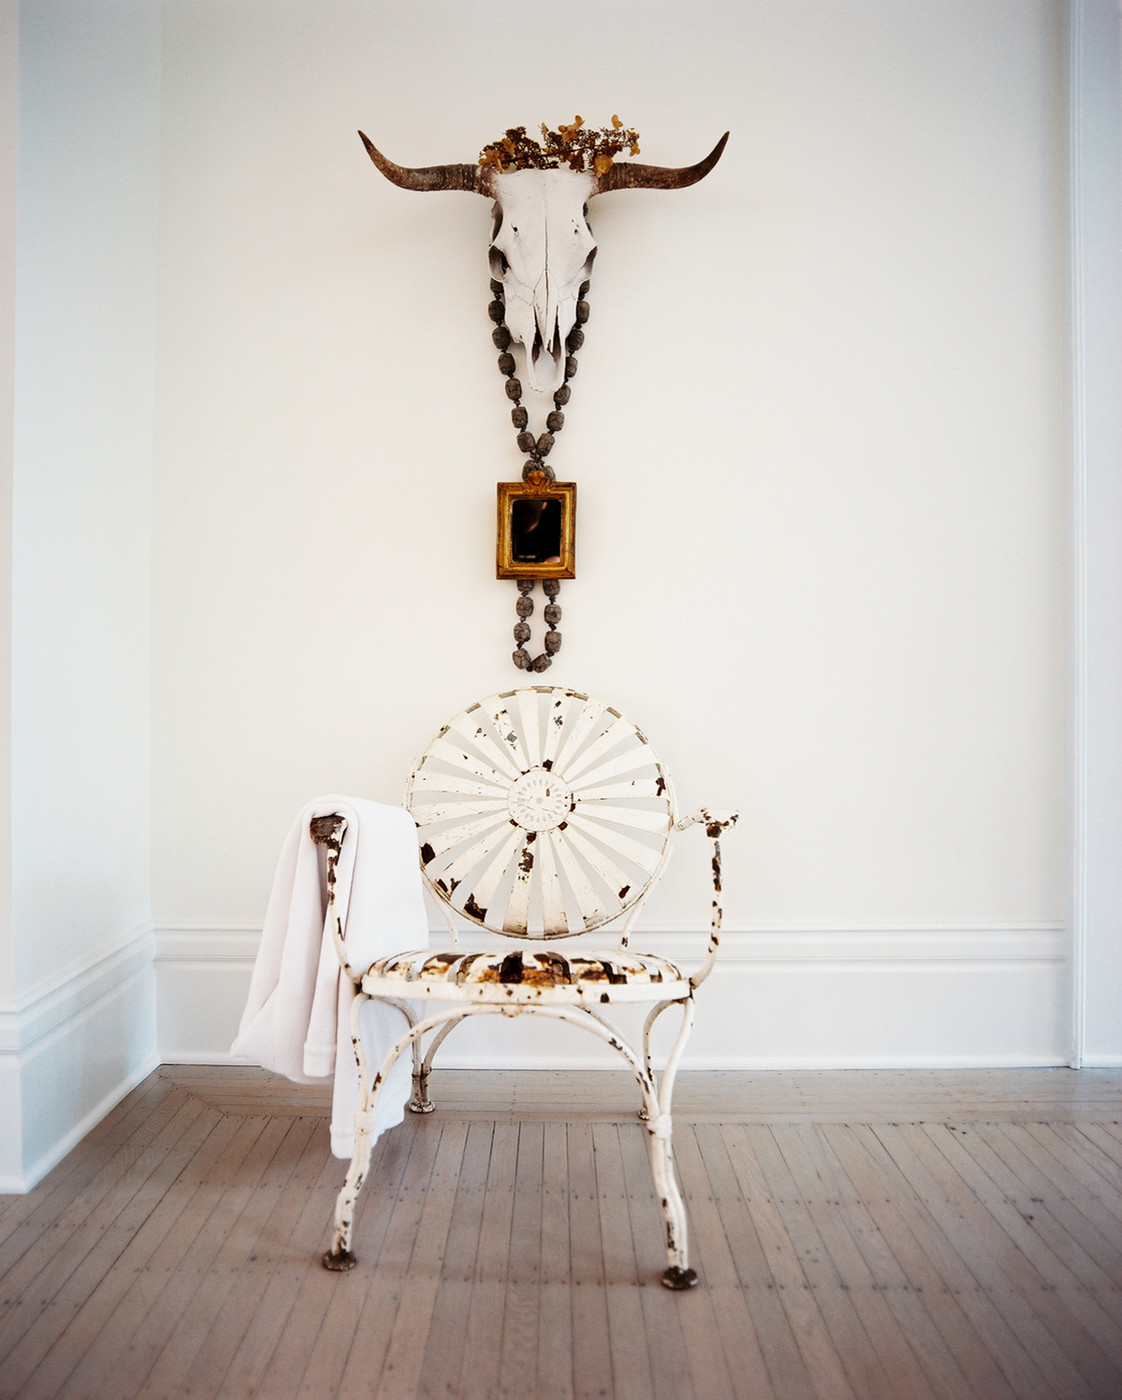 as art antler decor lonny ForAntler Decorations For Home